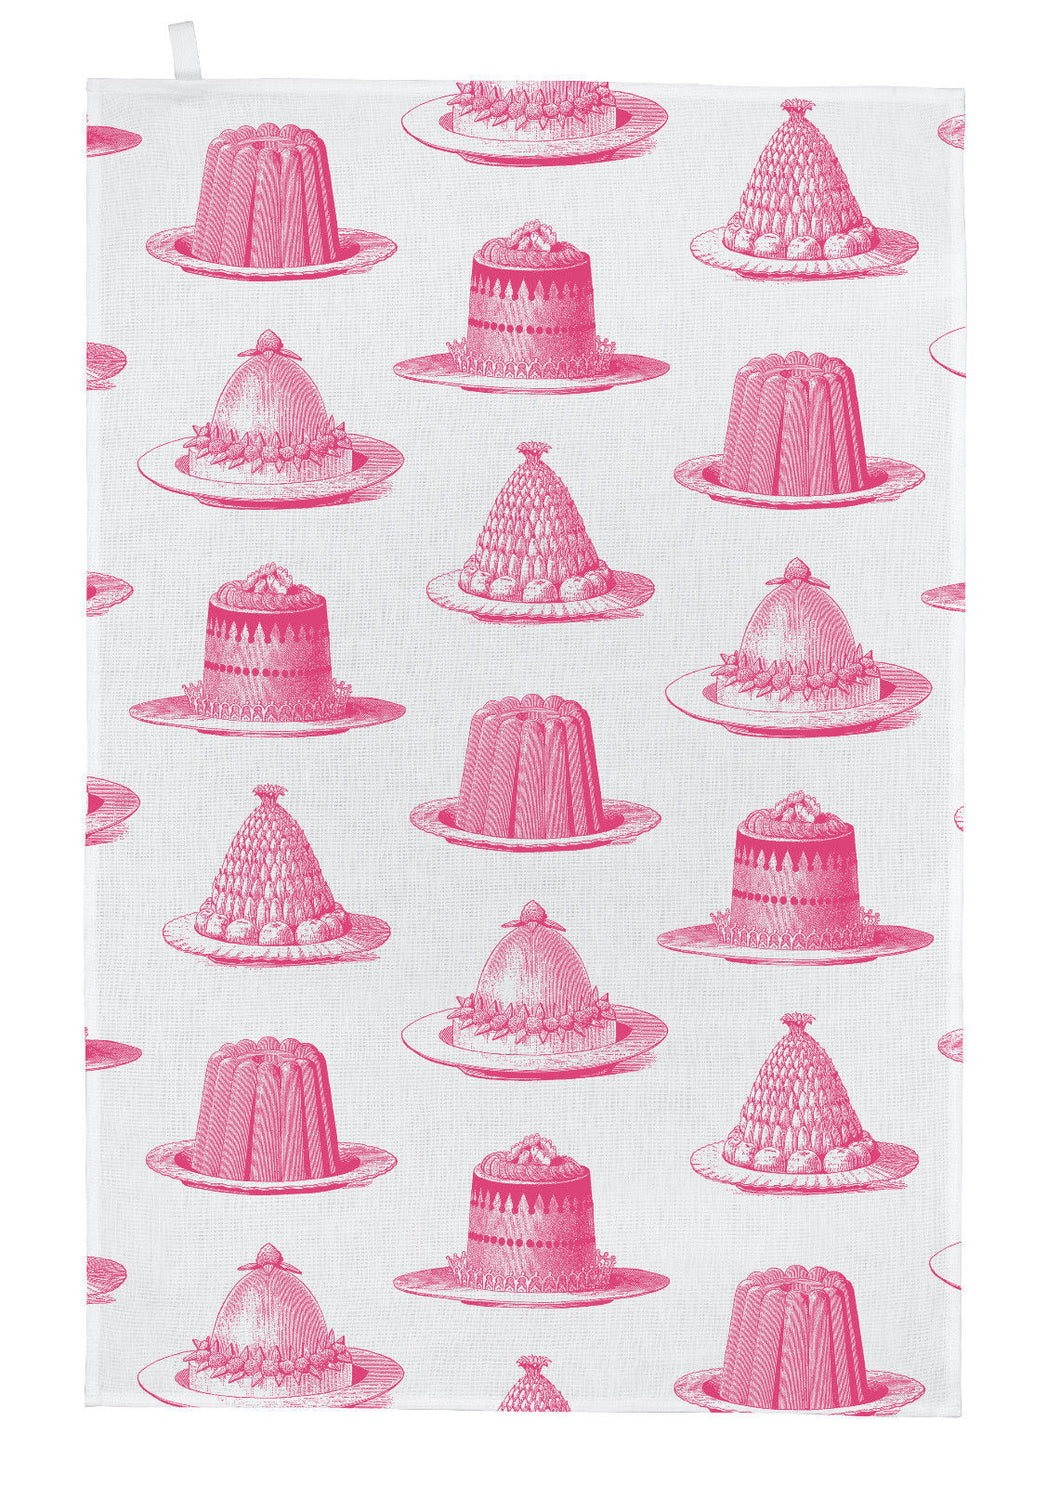 Thornback & Peel Tea Towel, Pink Jelly and Cake Design, 100% Cotton